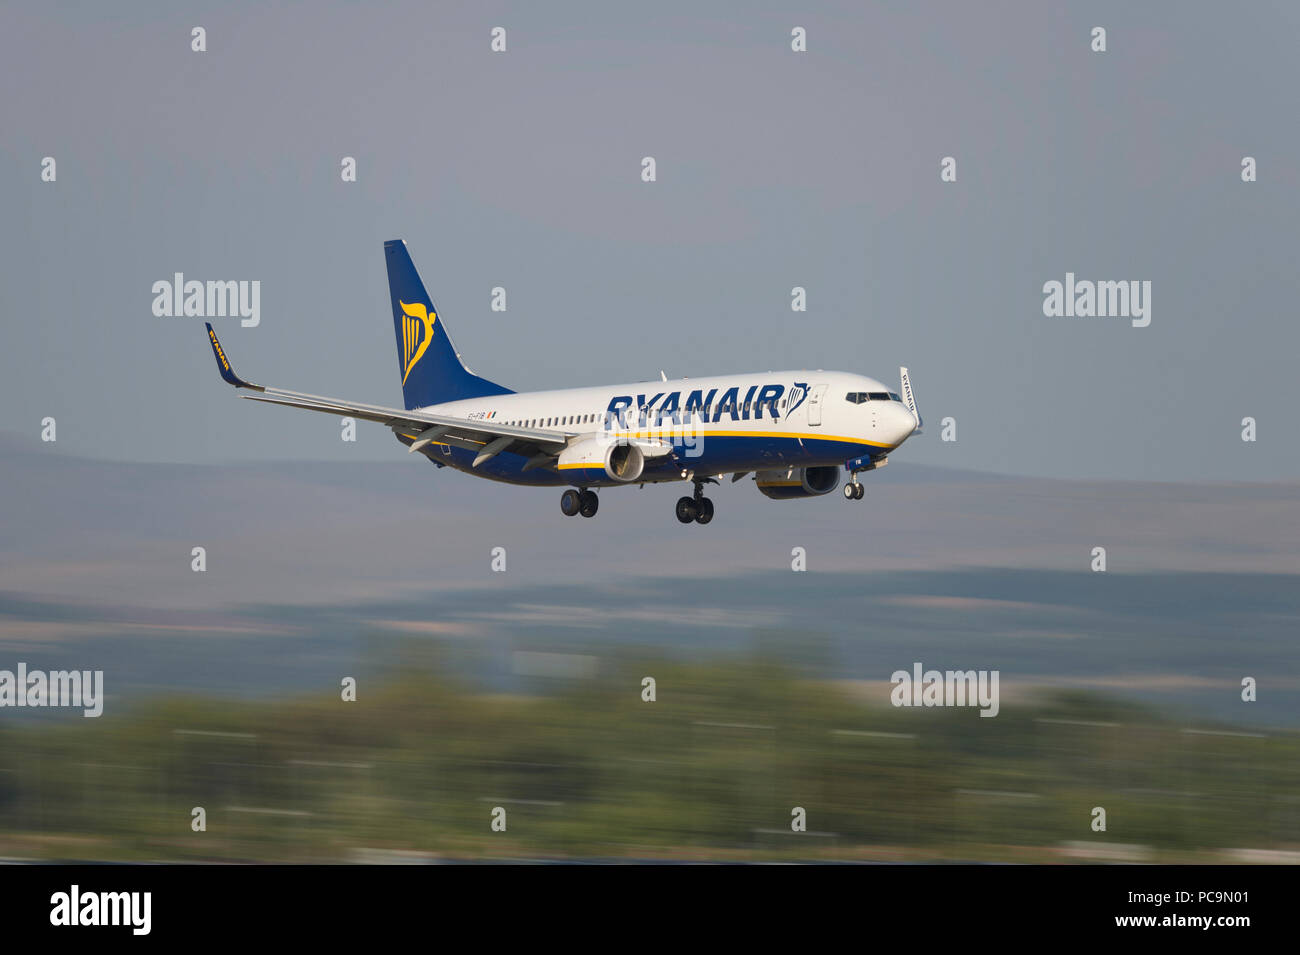 An Ryanair Boeing 737-8AS comes in to land at Manchester Airport, UK. - Stock Image